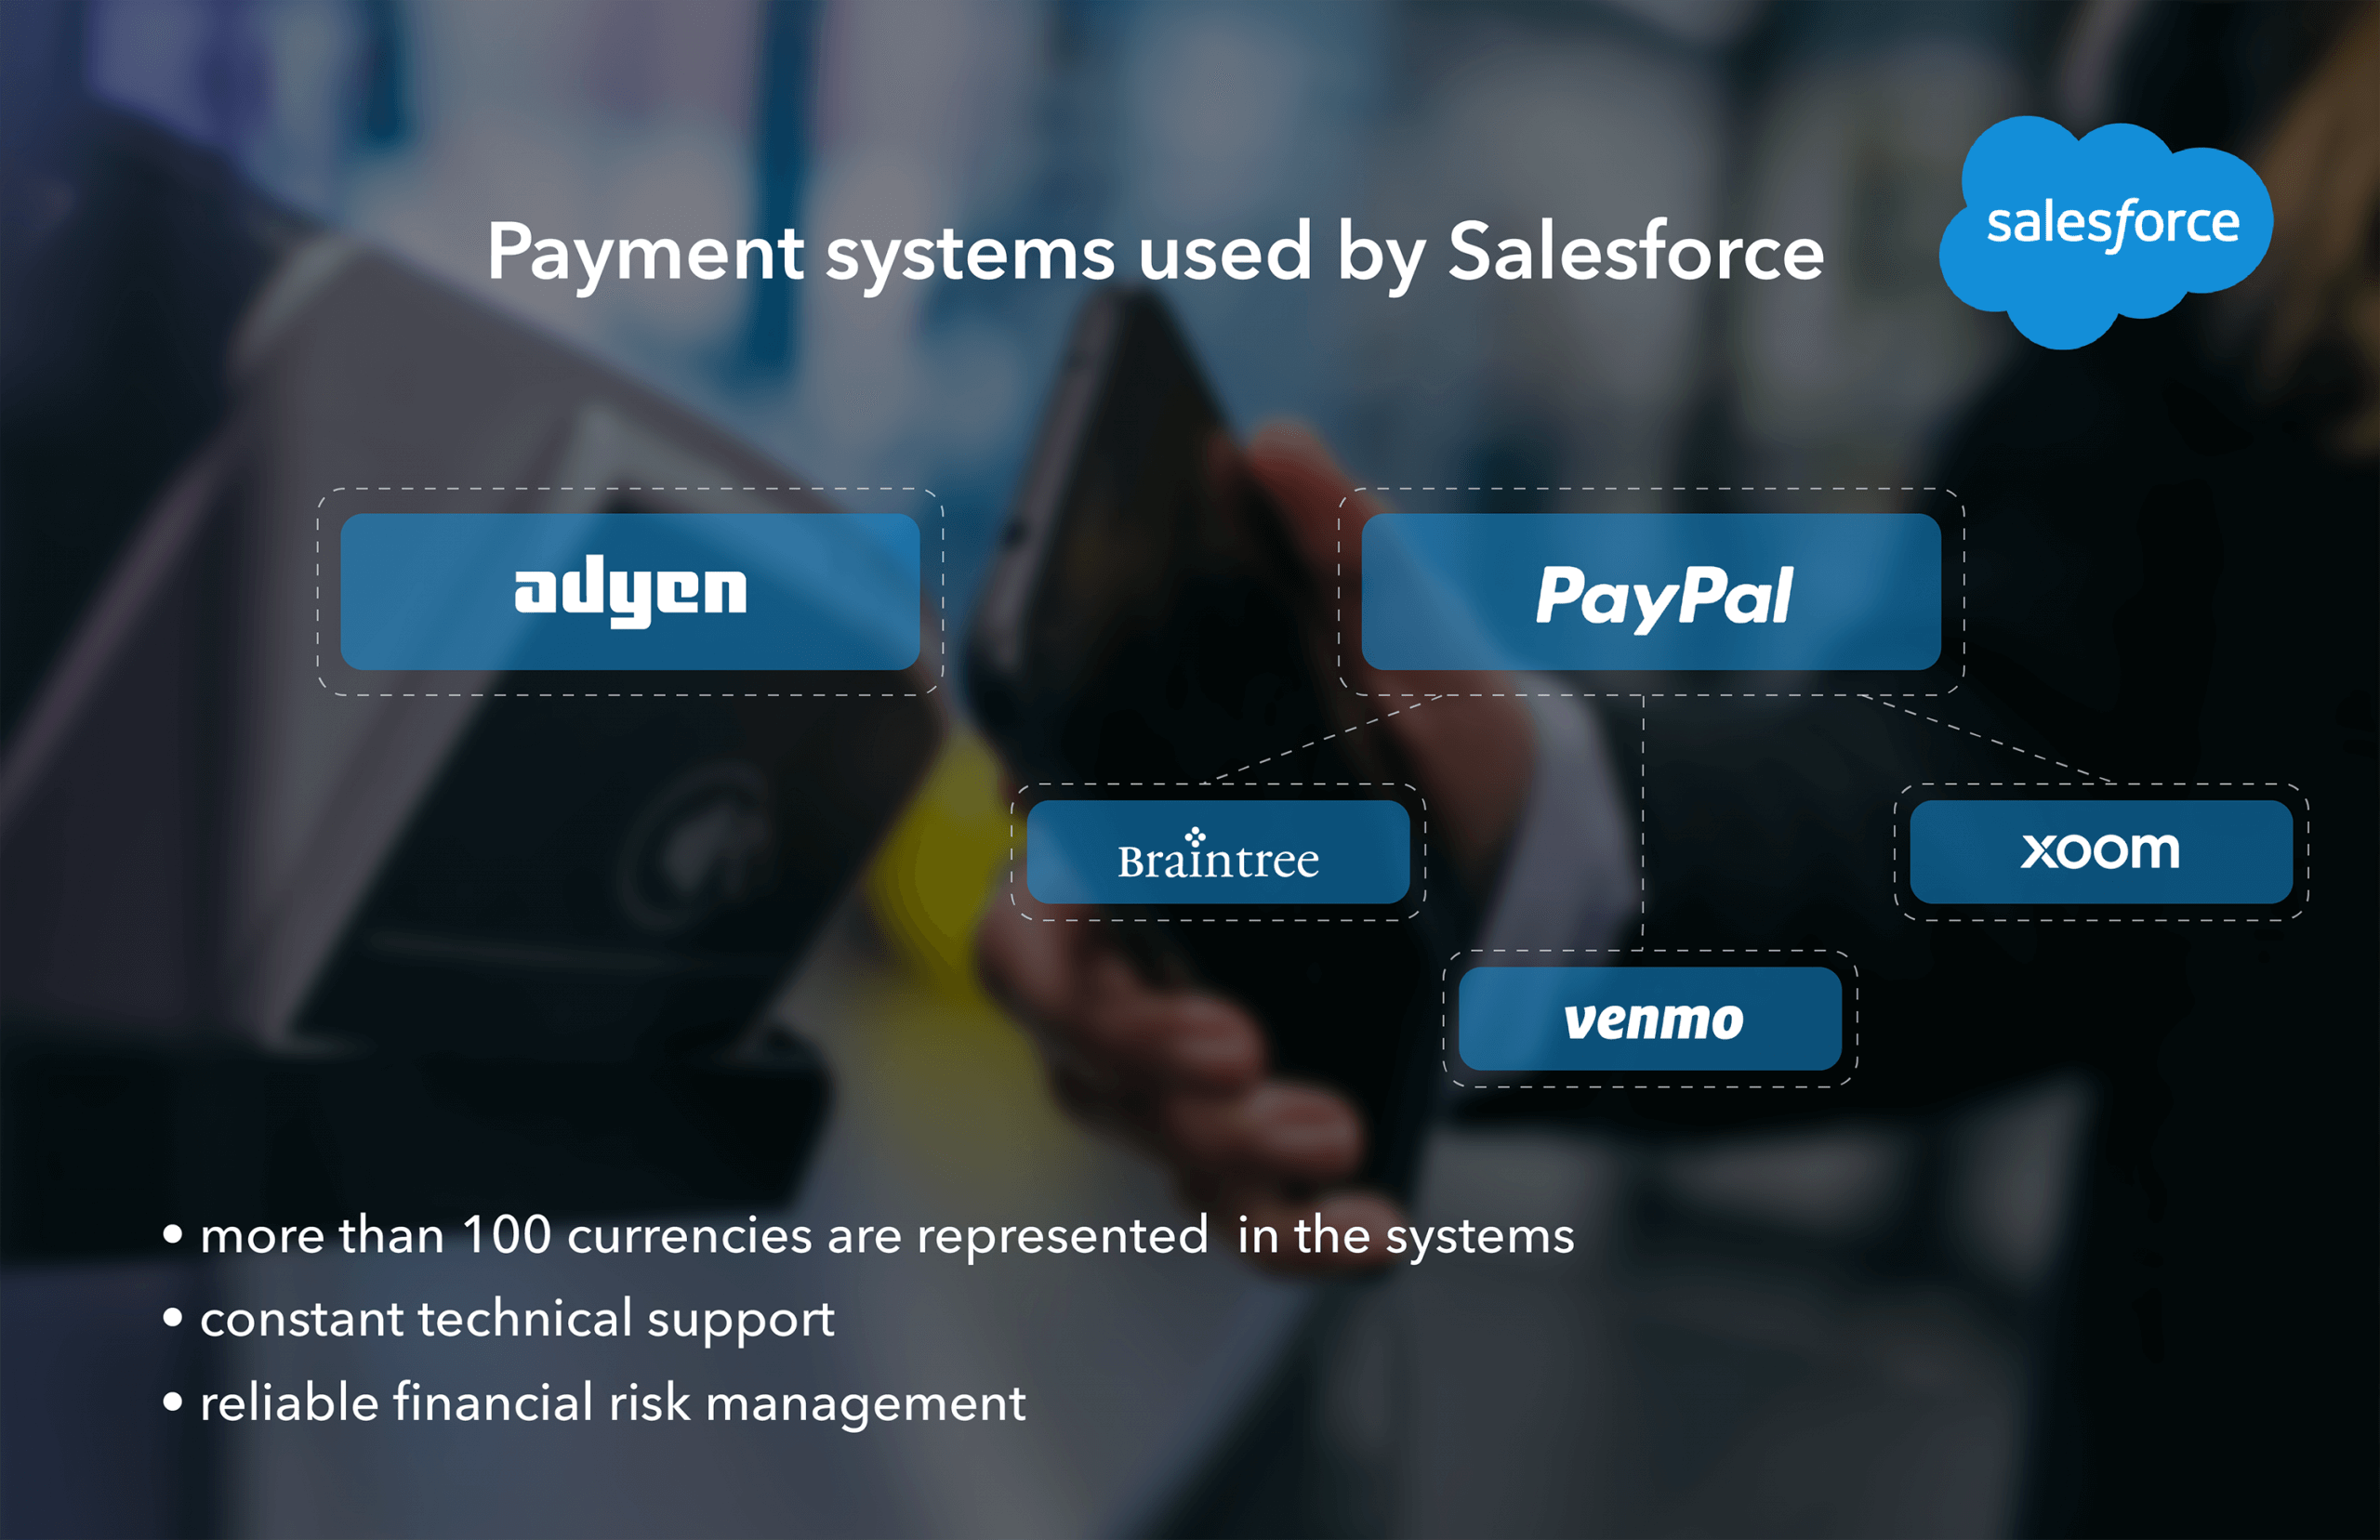 Payment systems used by Salesforce